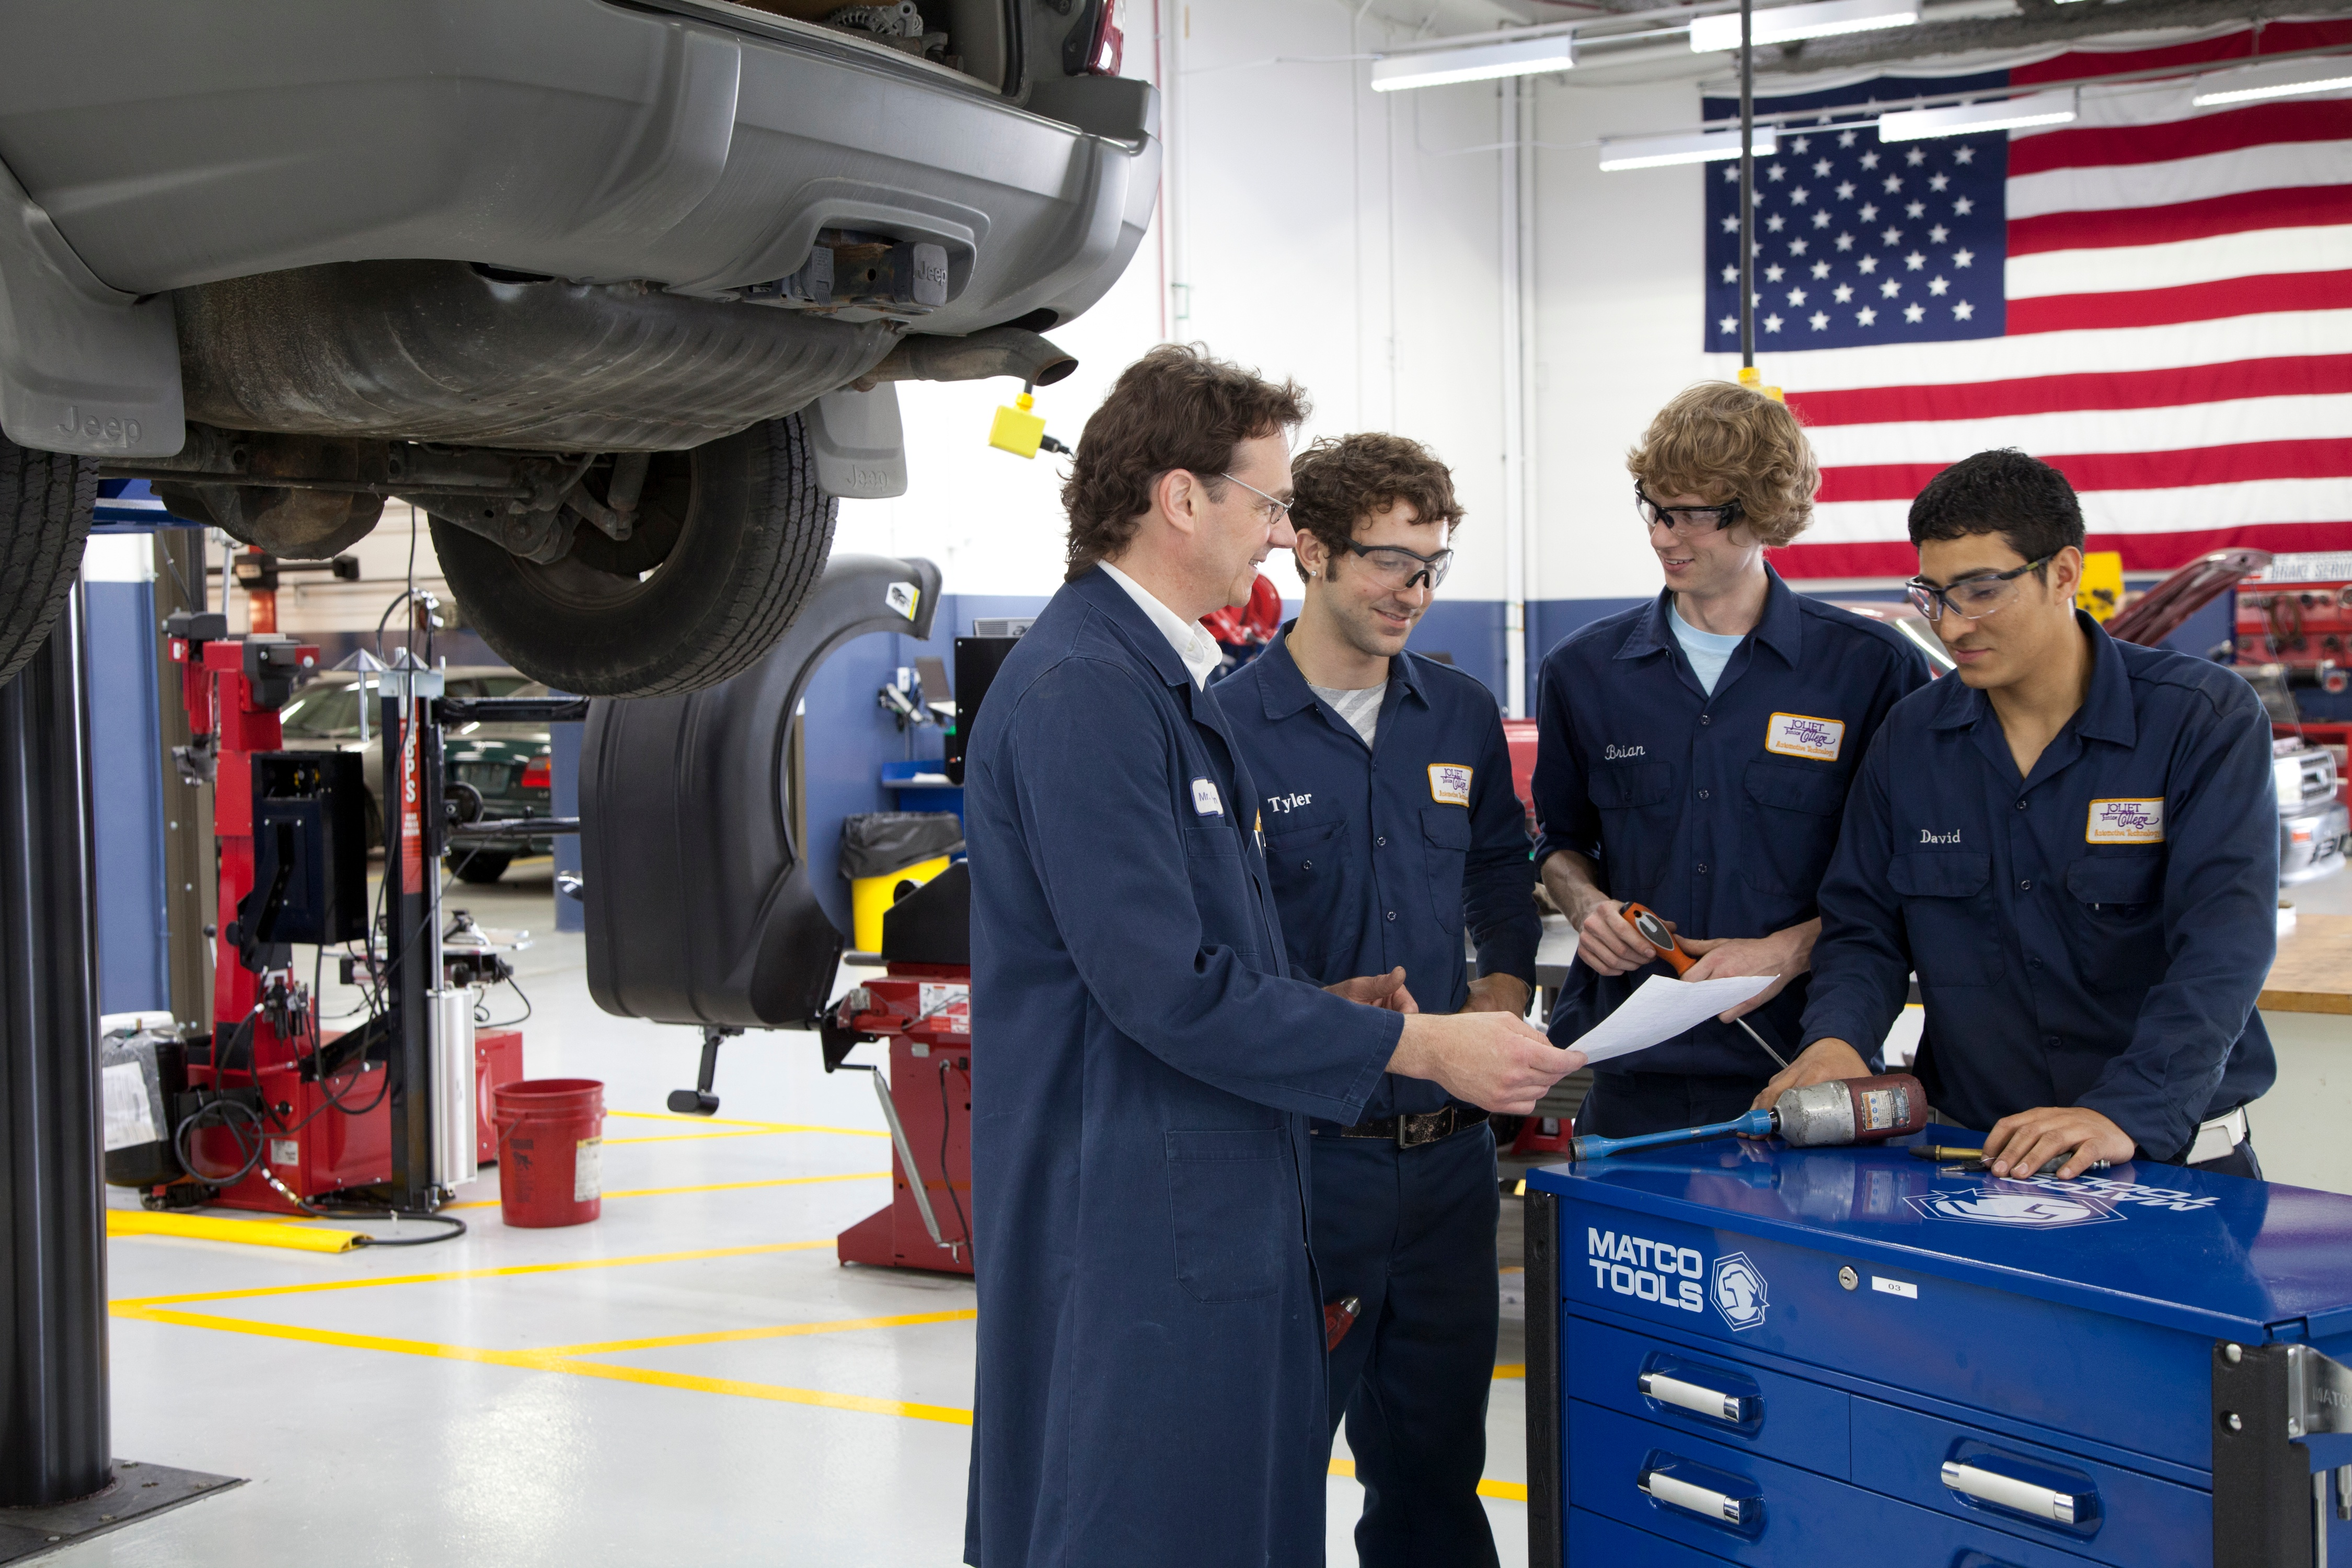 auto_shop_for_students_and_employees.jpg